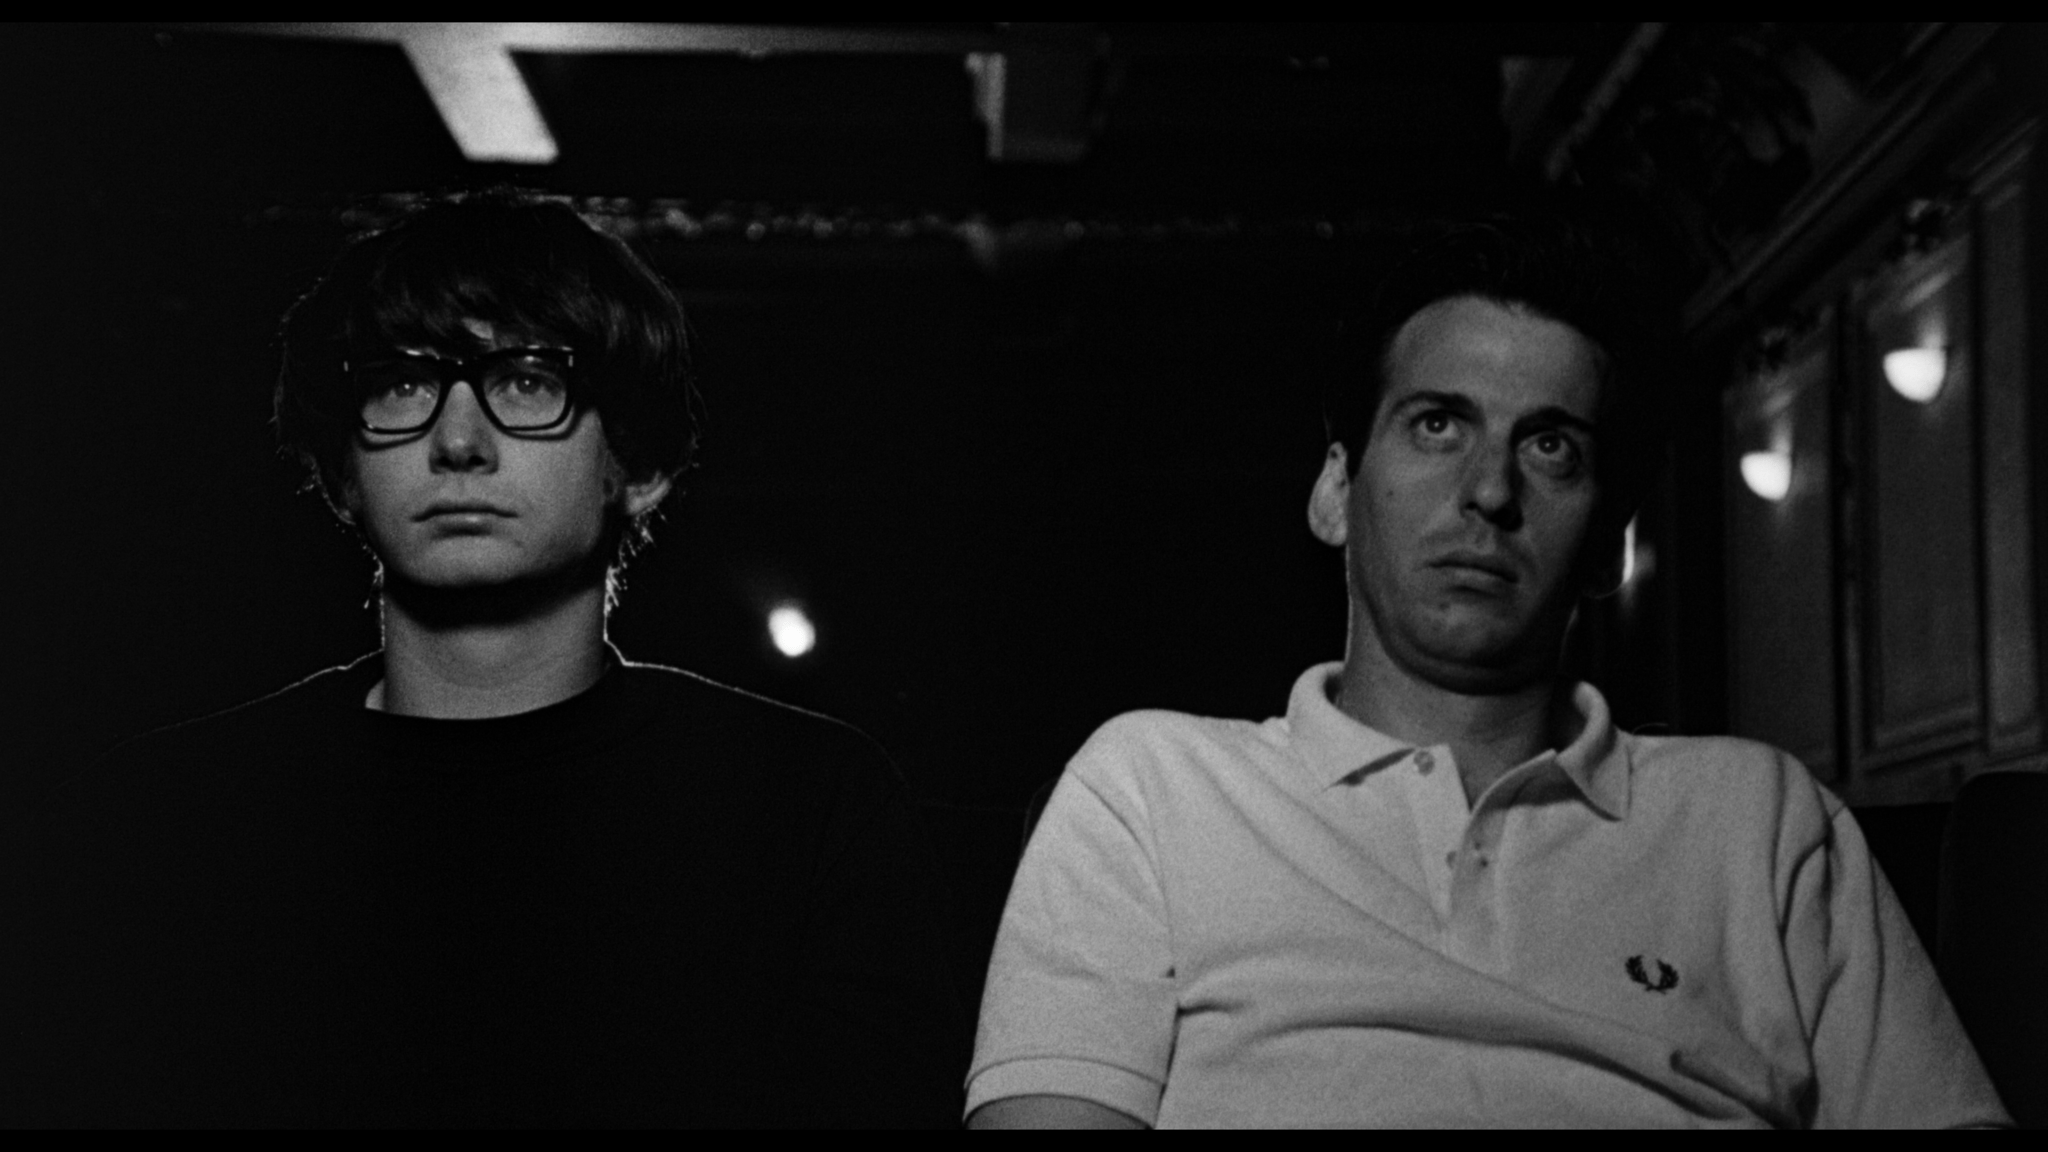 Ian Hart as John Lennon (left) and David Angus as Brian Epstein (rt)